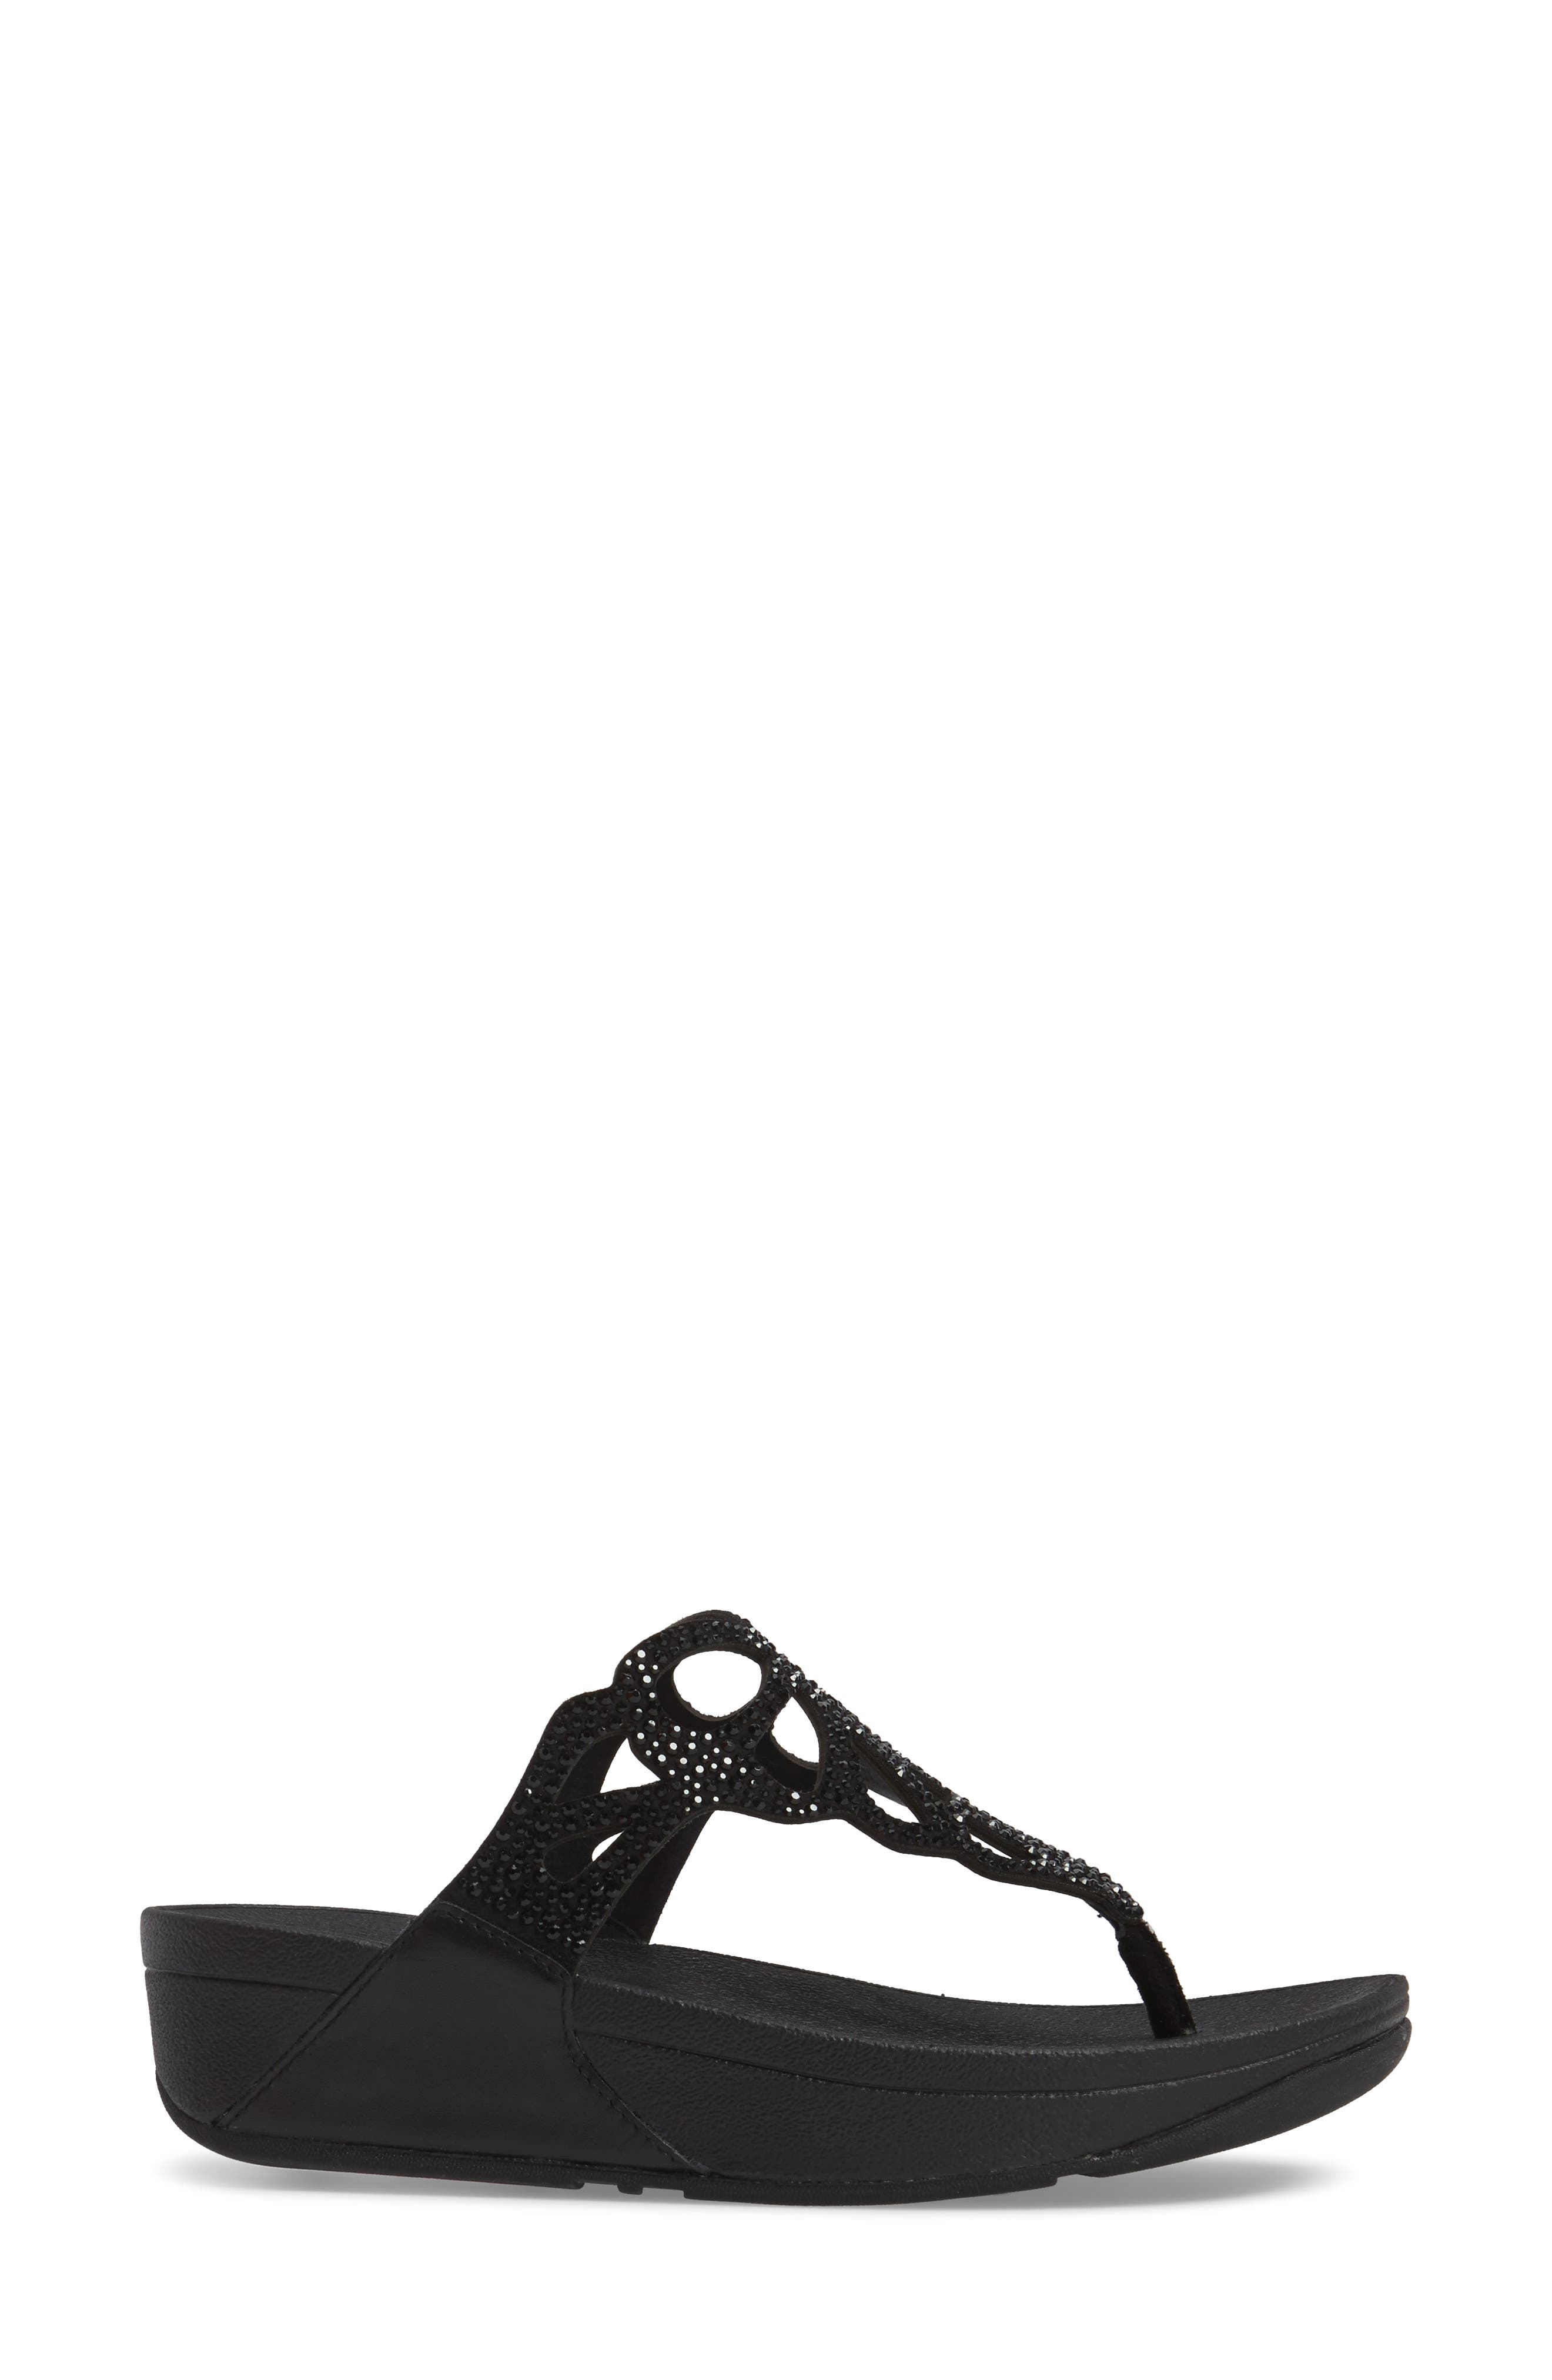 Alternate Image 3  - FitFlop Bumble Crystal Flip Flop (Women)